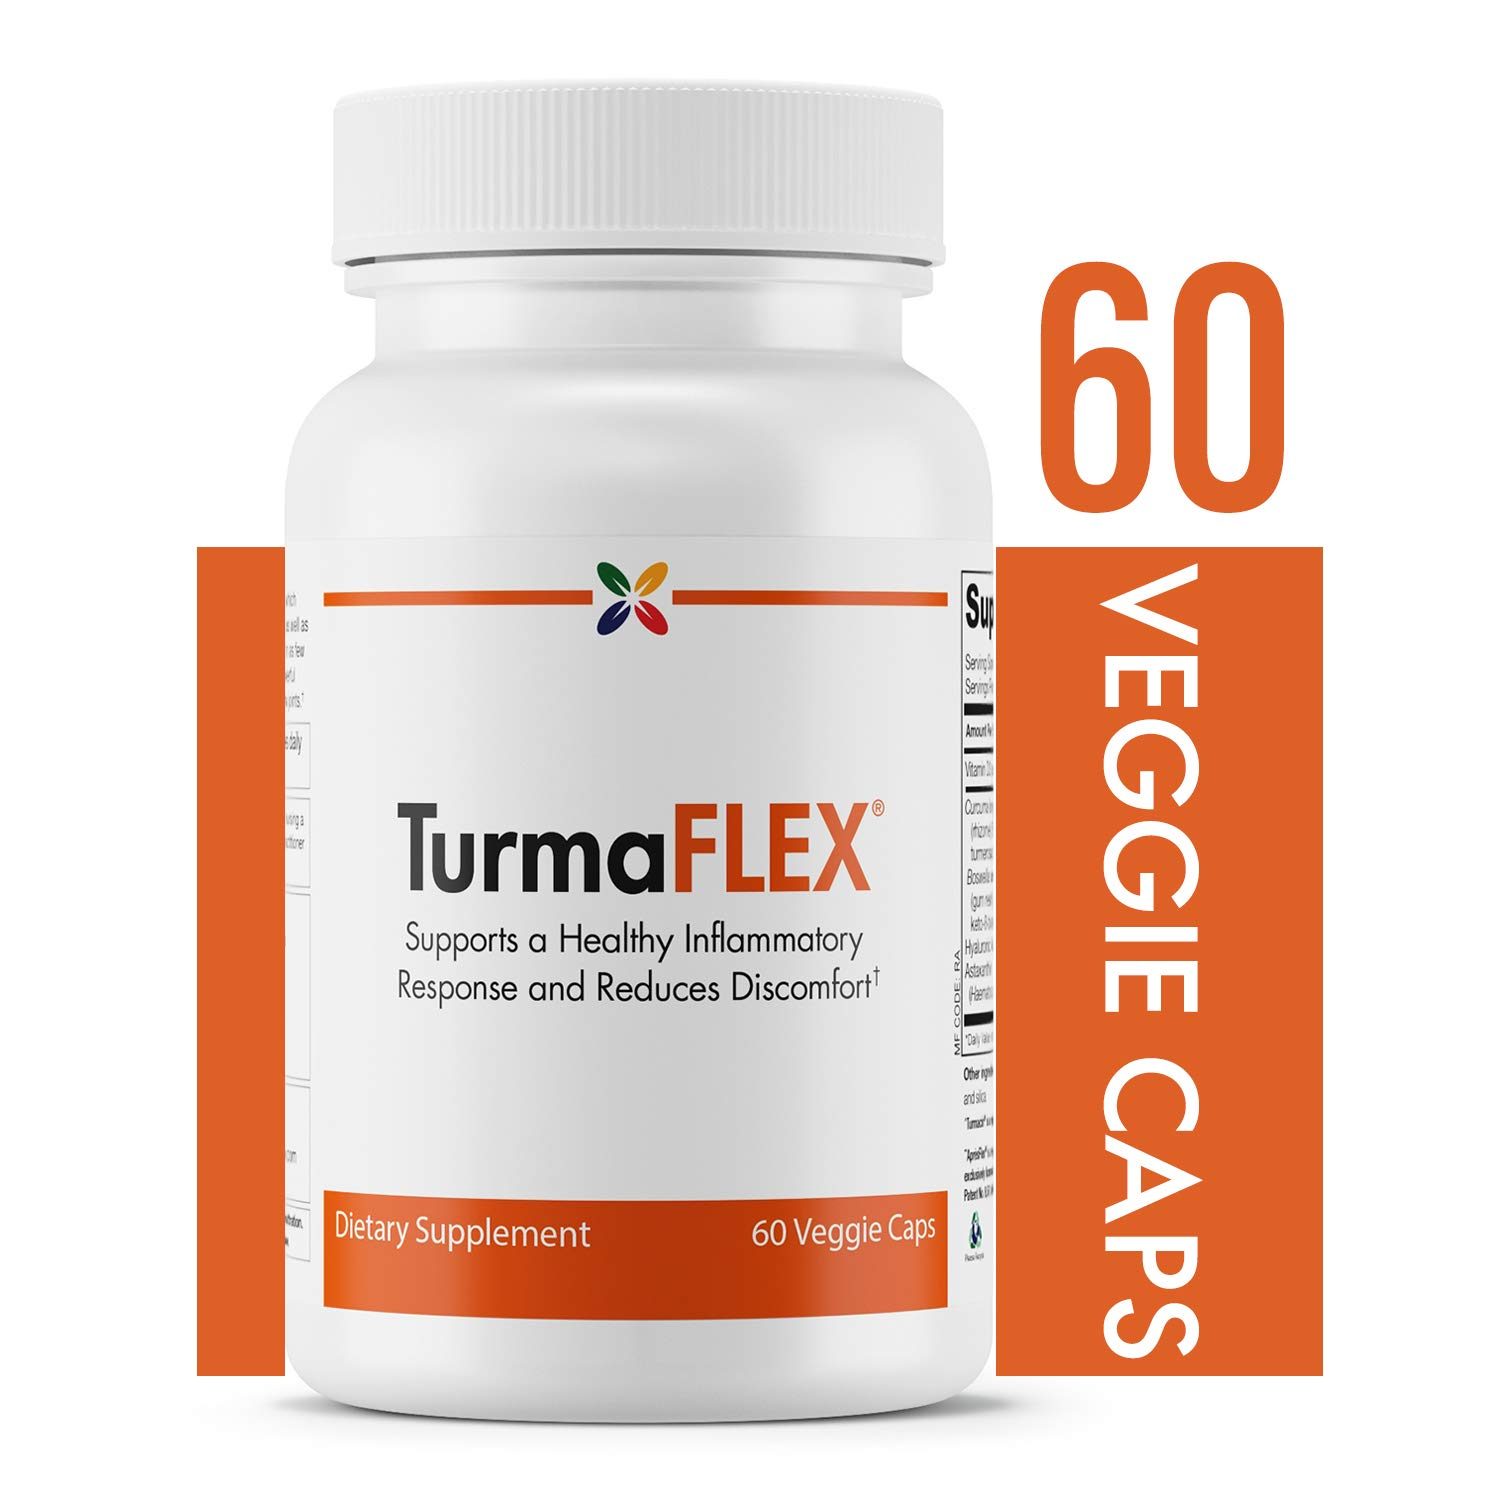 Stop Aging Now - TurmaFLEXTM Joint Formula with Turmeric (CUJWPT) - Supports a Healthy Inflammatory Response and Reduces Discomfort - 60 Veggie Caps